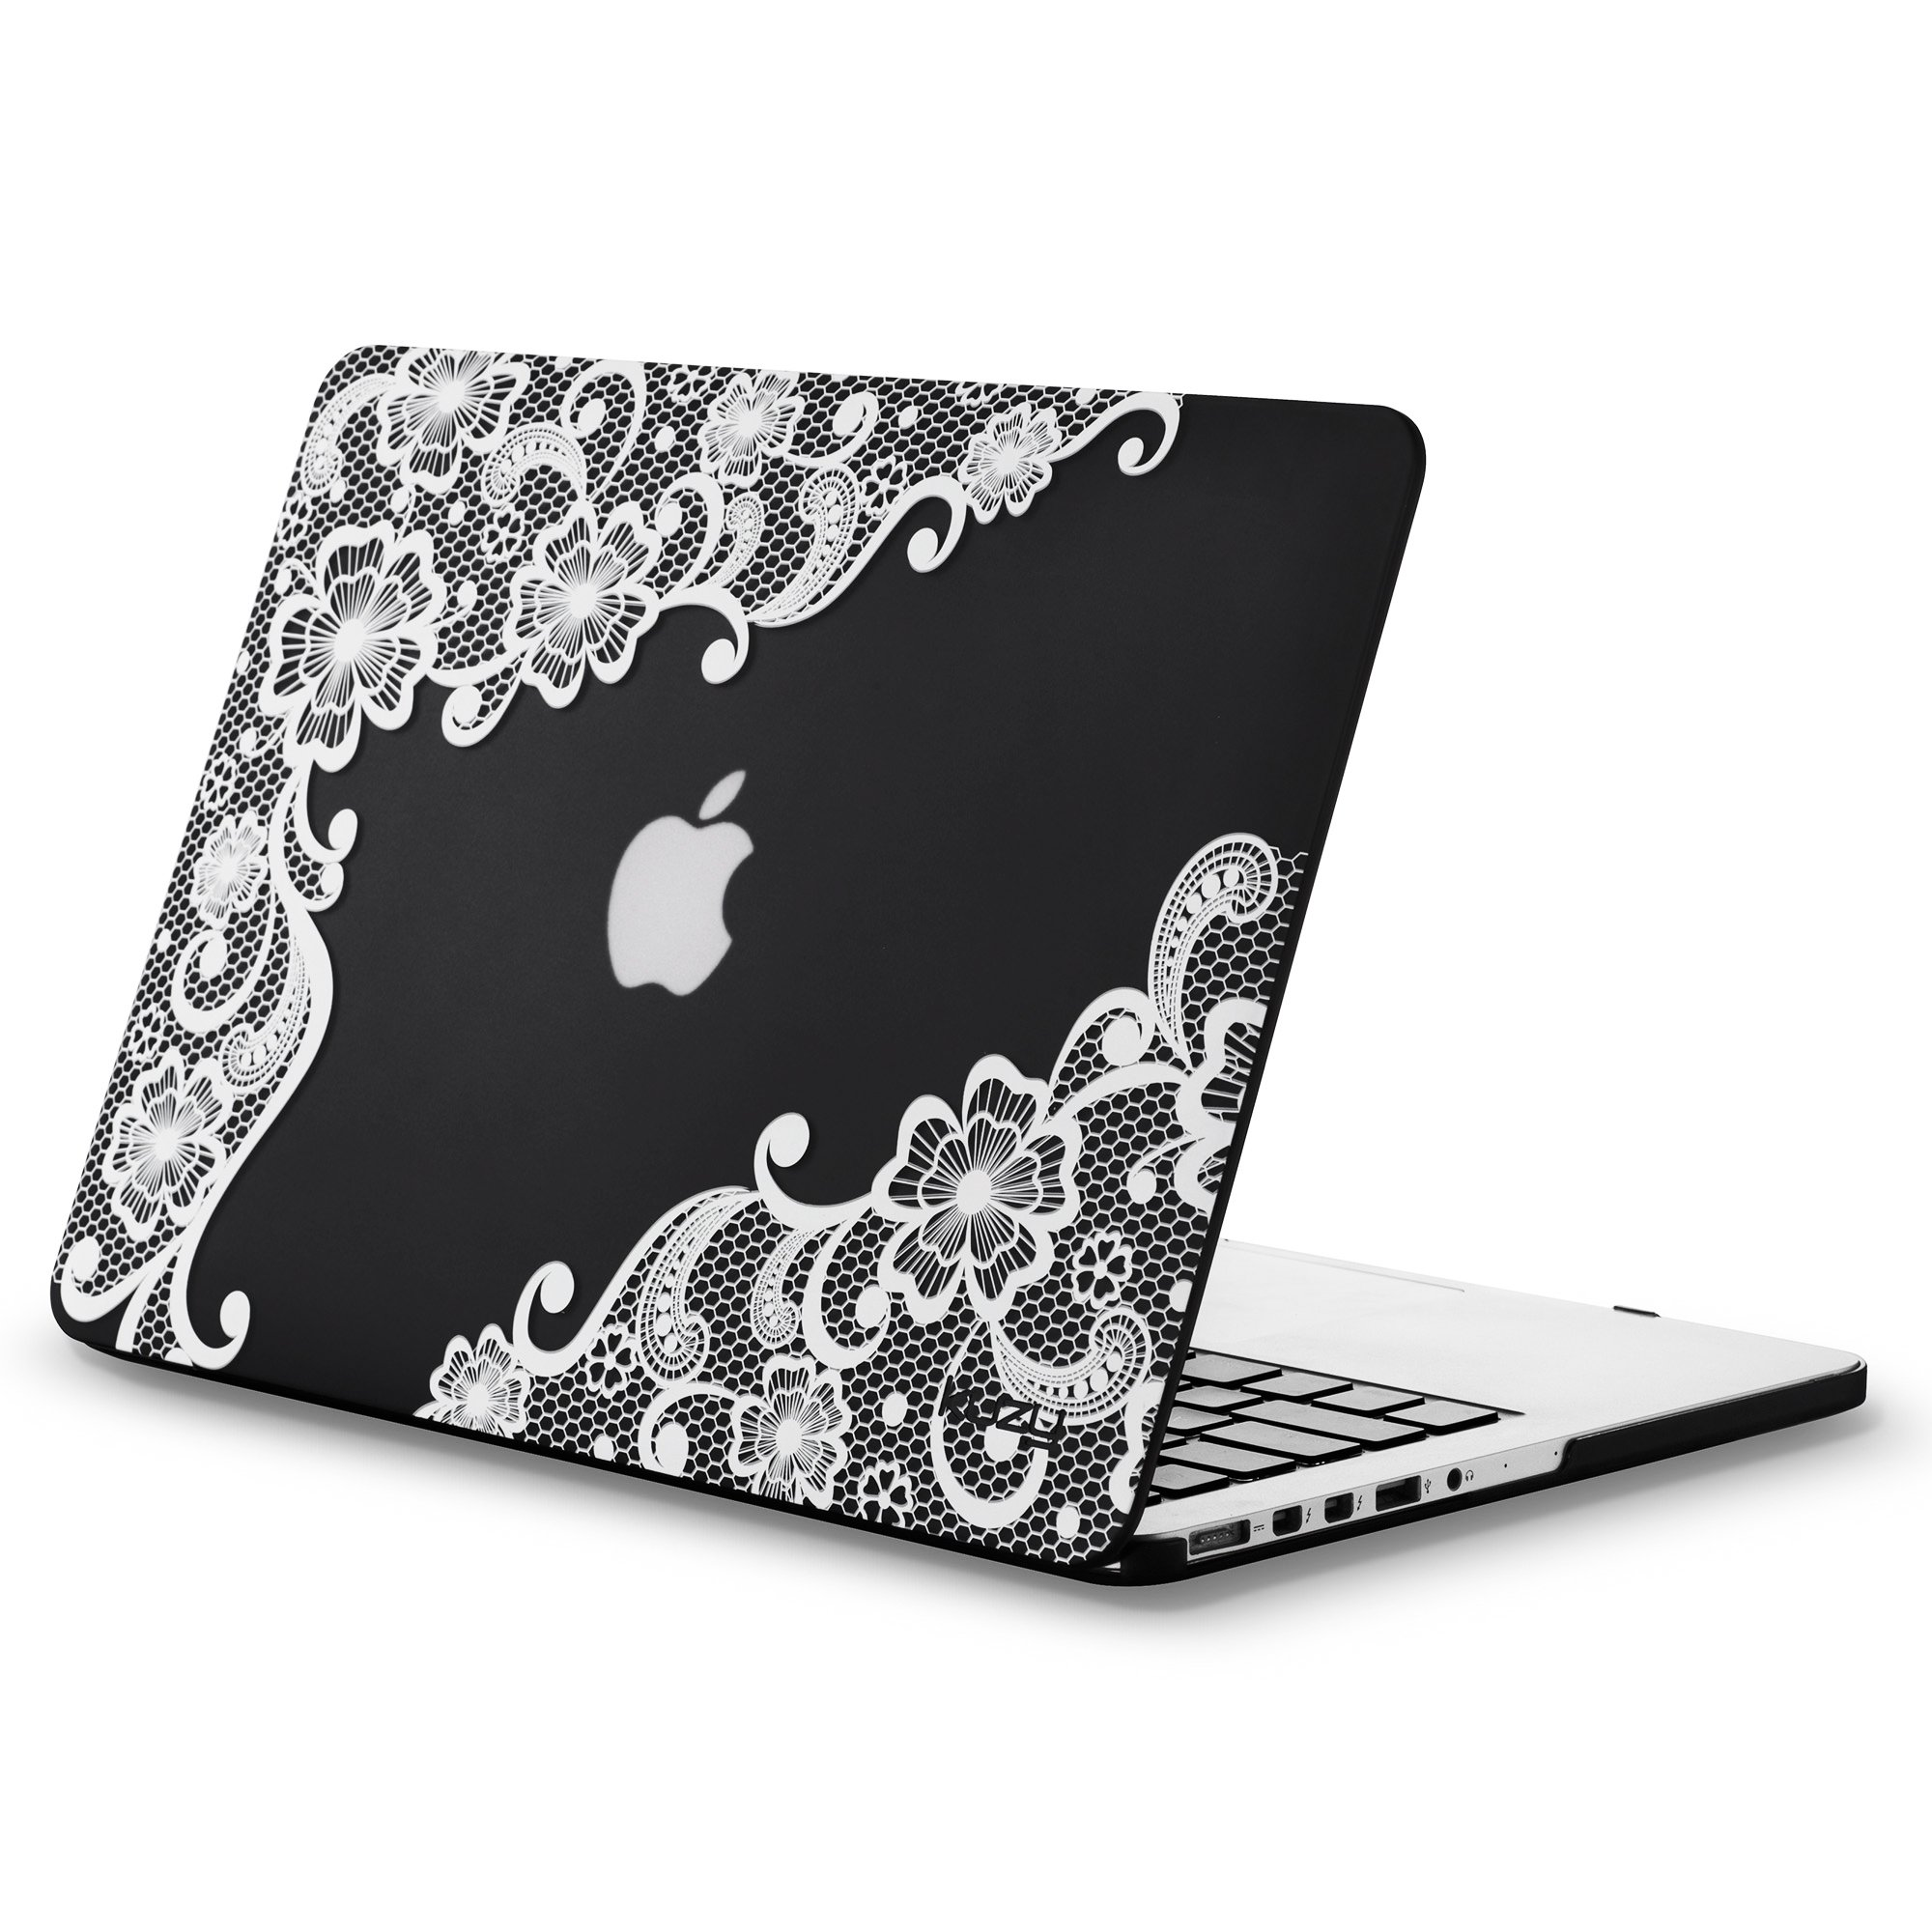 Kuzy - Older Version MacBook Pro 13.3 inch Case (Release 2015-2012) Rubberized Hard Cover for Model A1502 / A1425 with Retina Display Shell Plastic - Lace Black